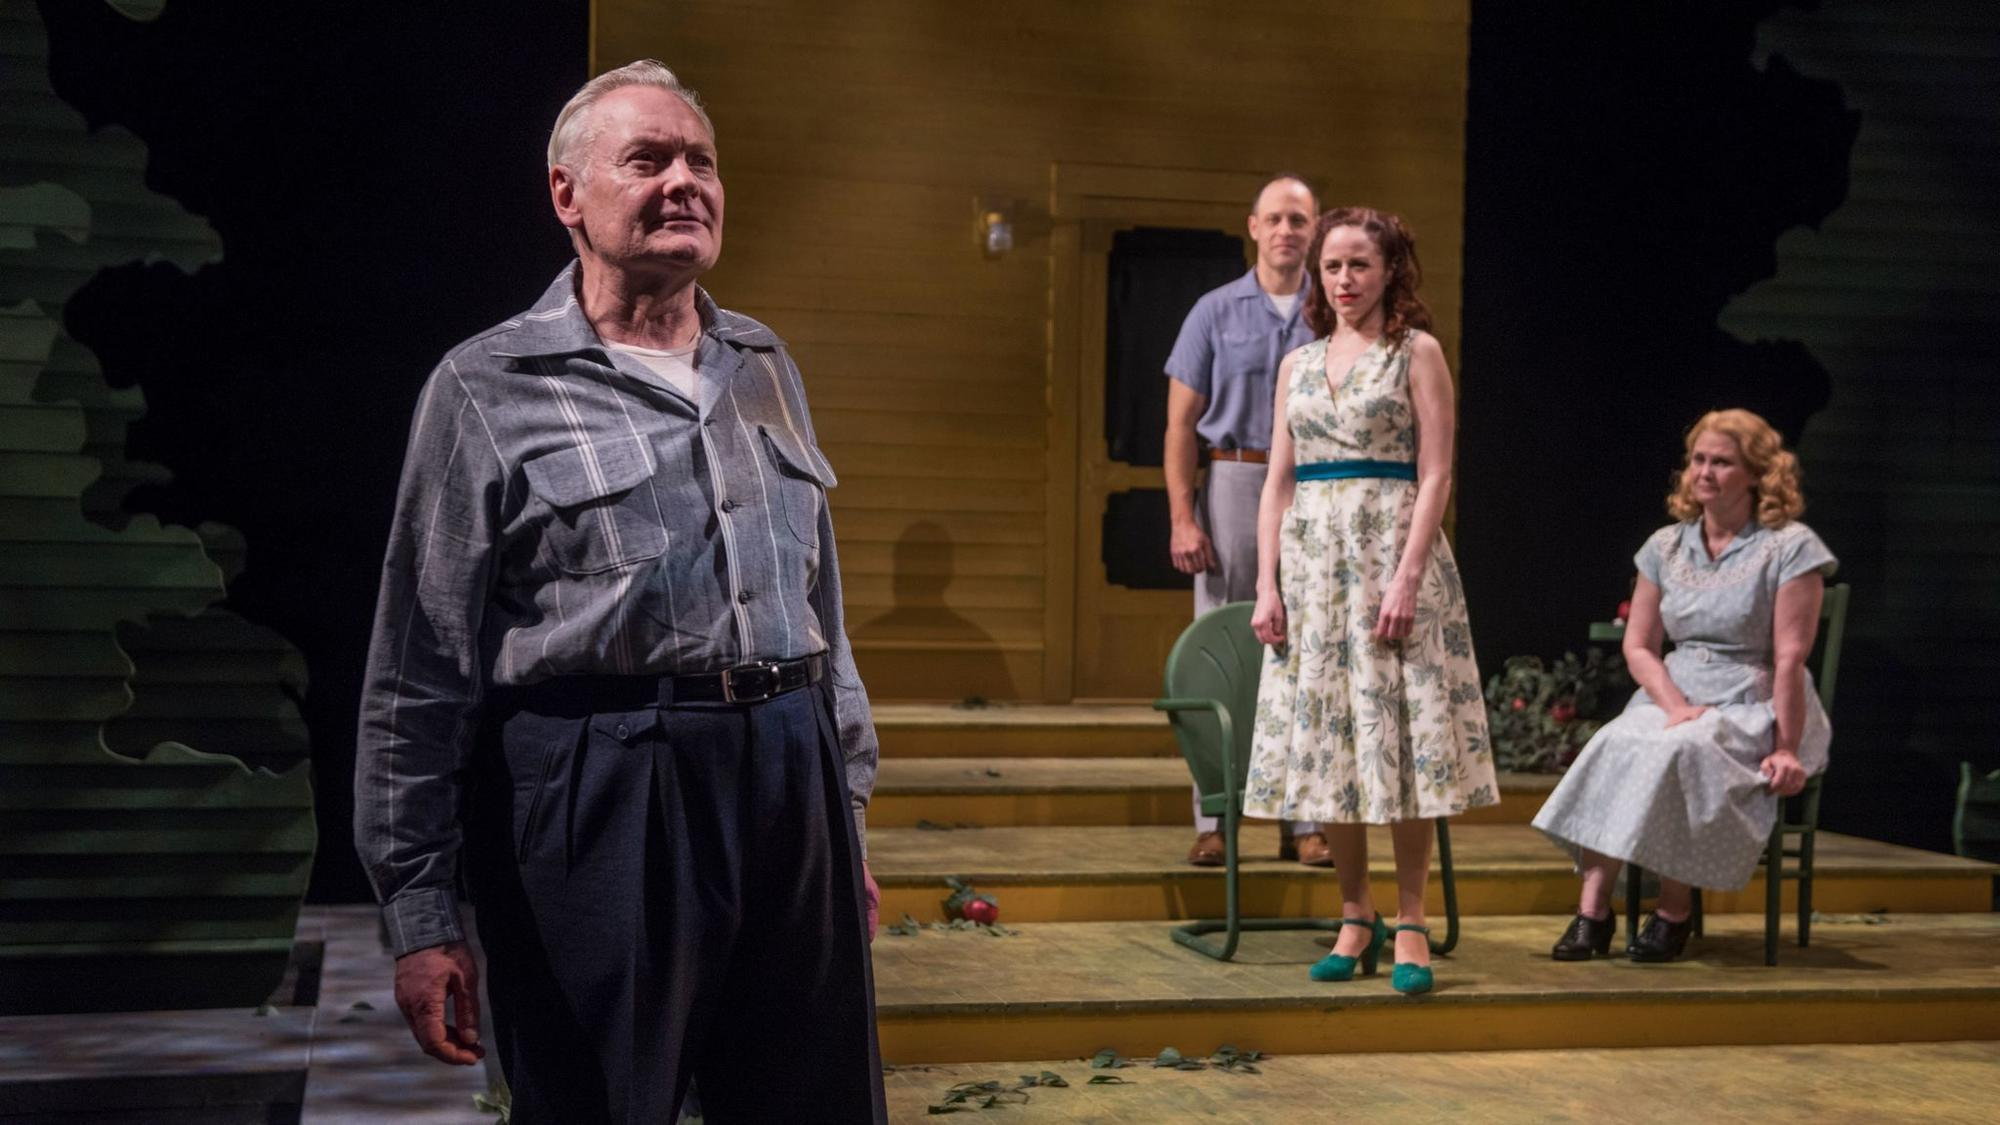 A monumental fall in Court Theatre's 4-star 'All My Sons'